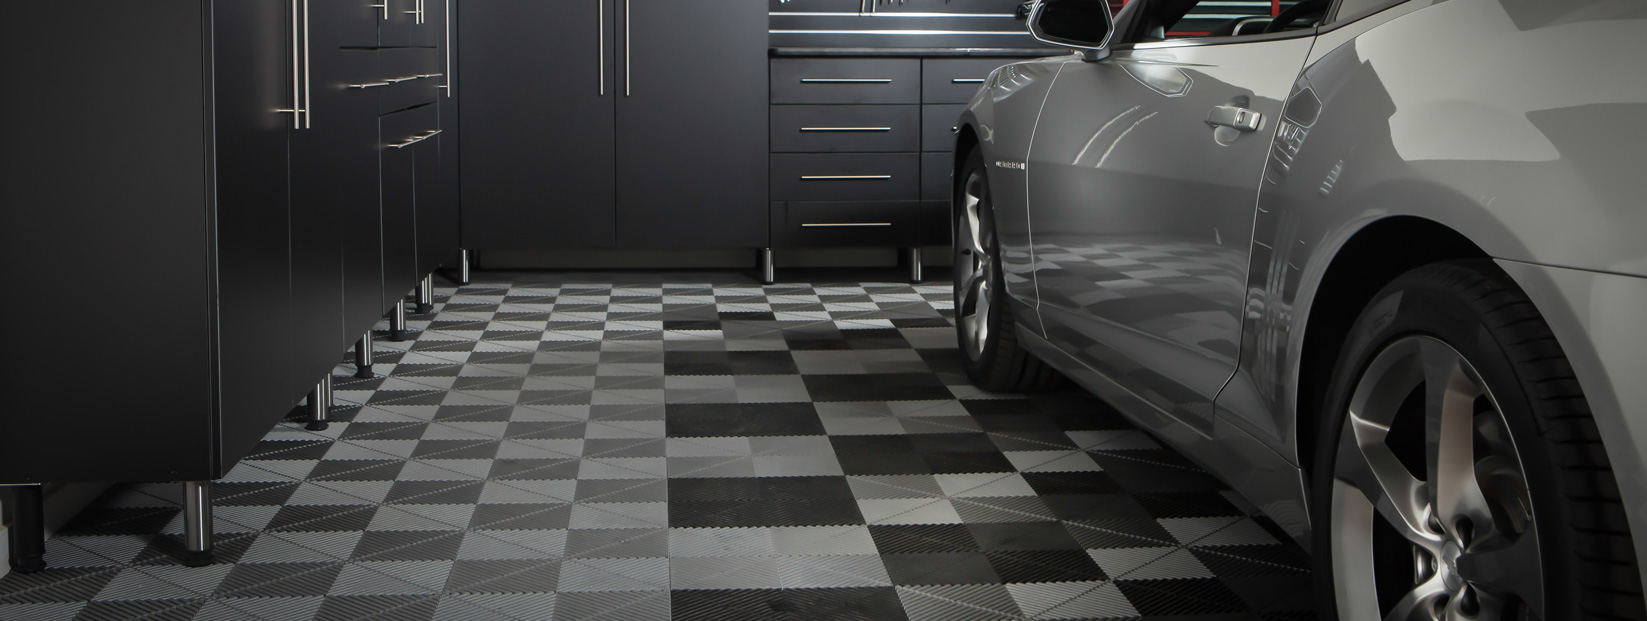 Garage Floor Tiles Cincinnati